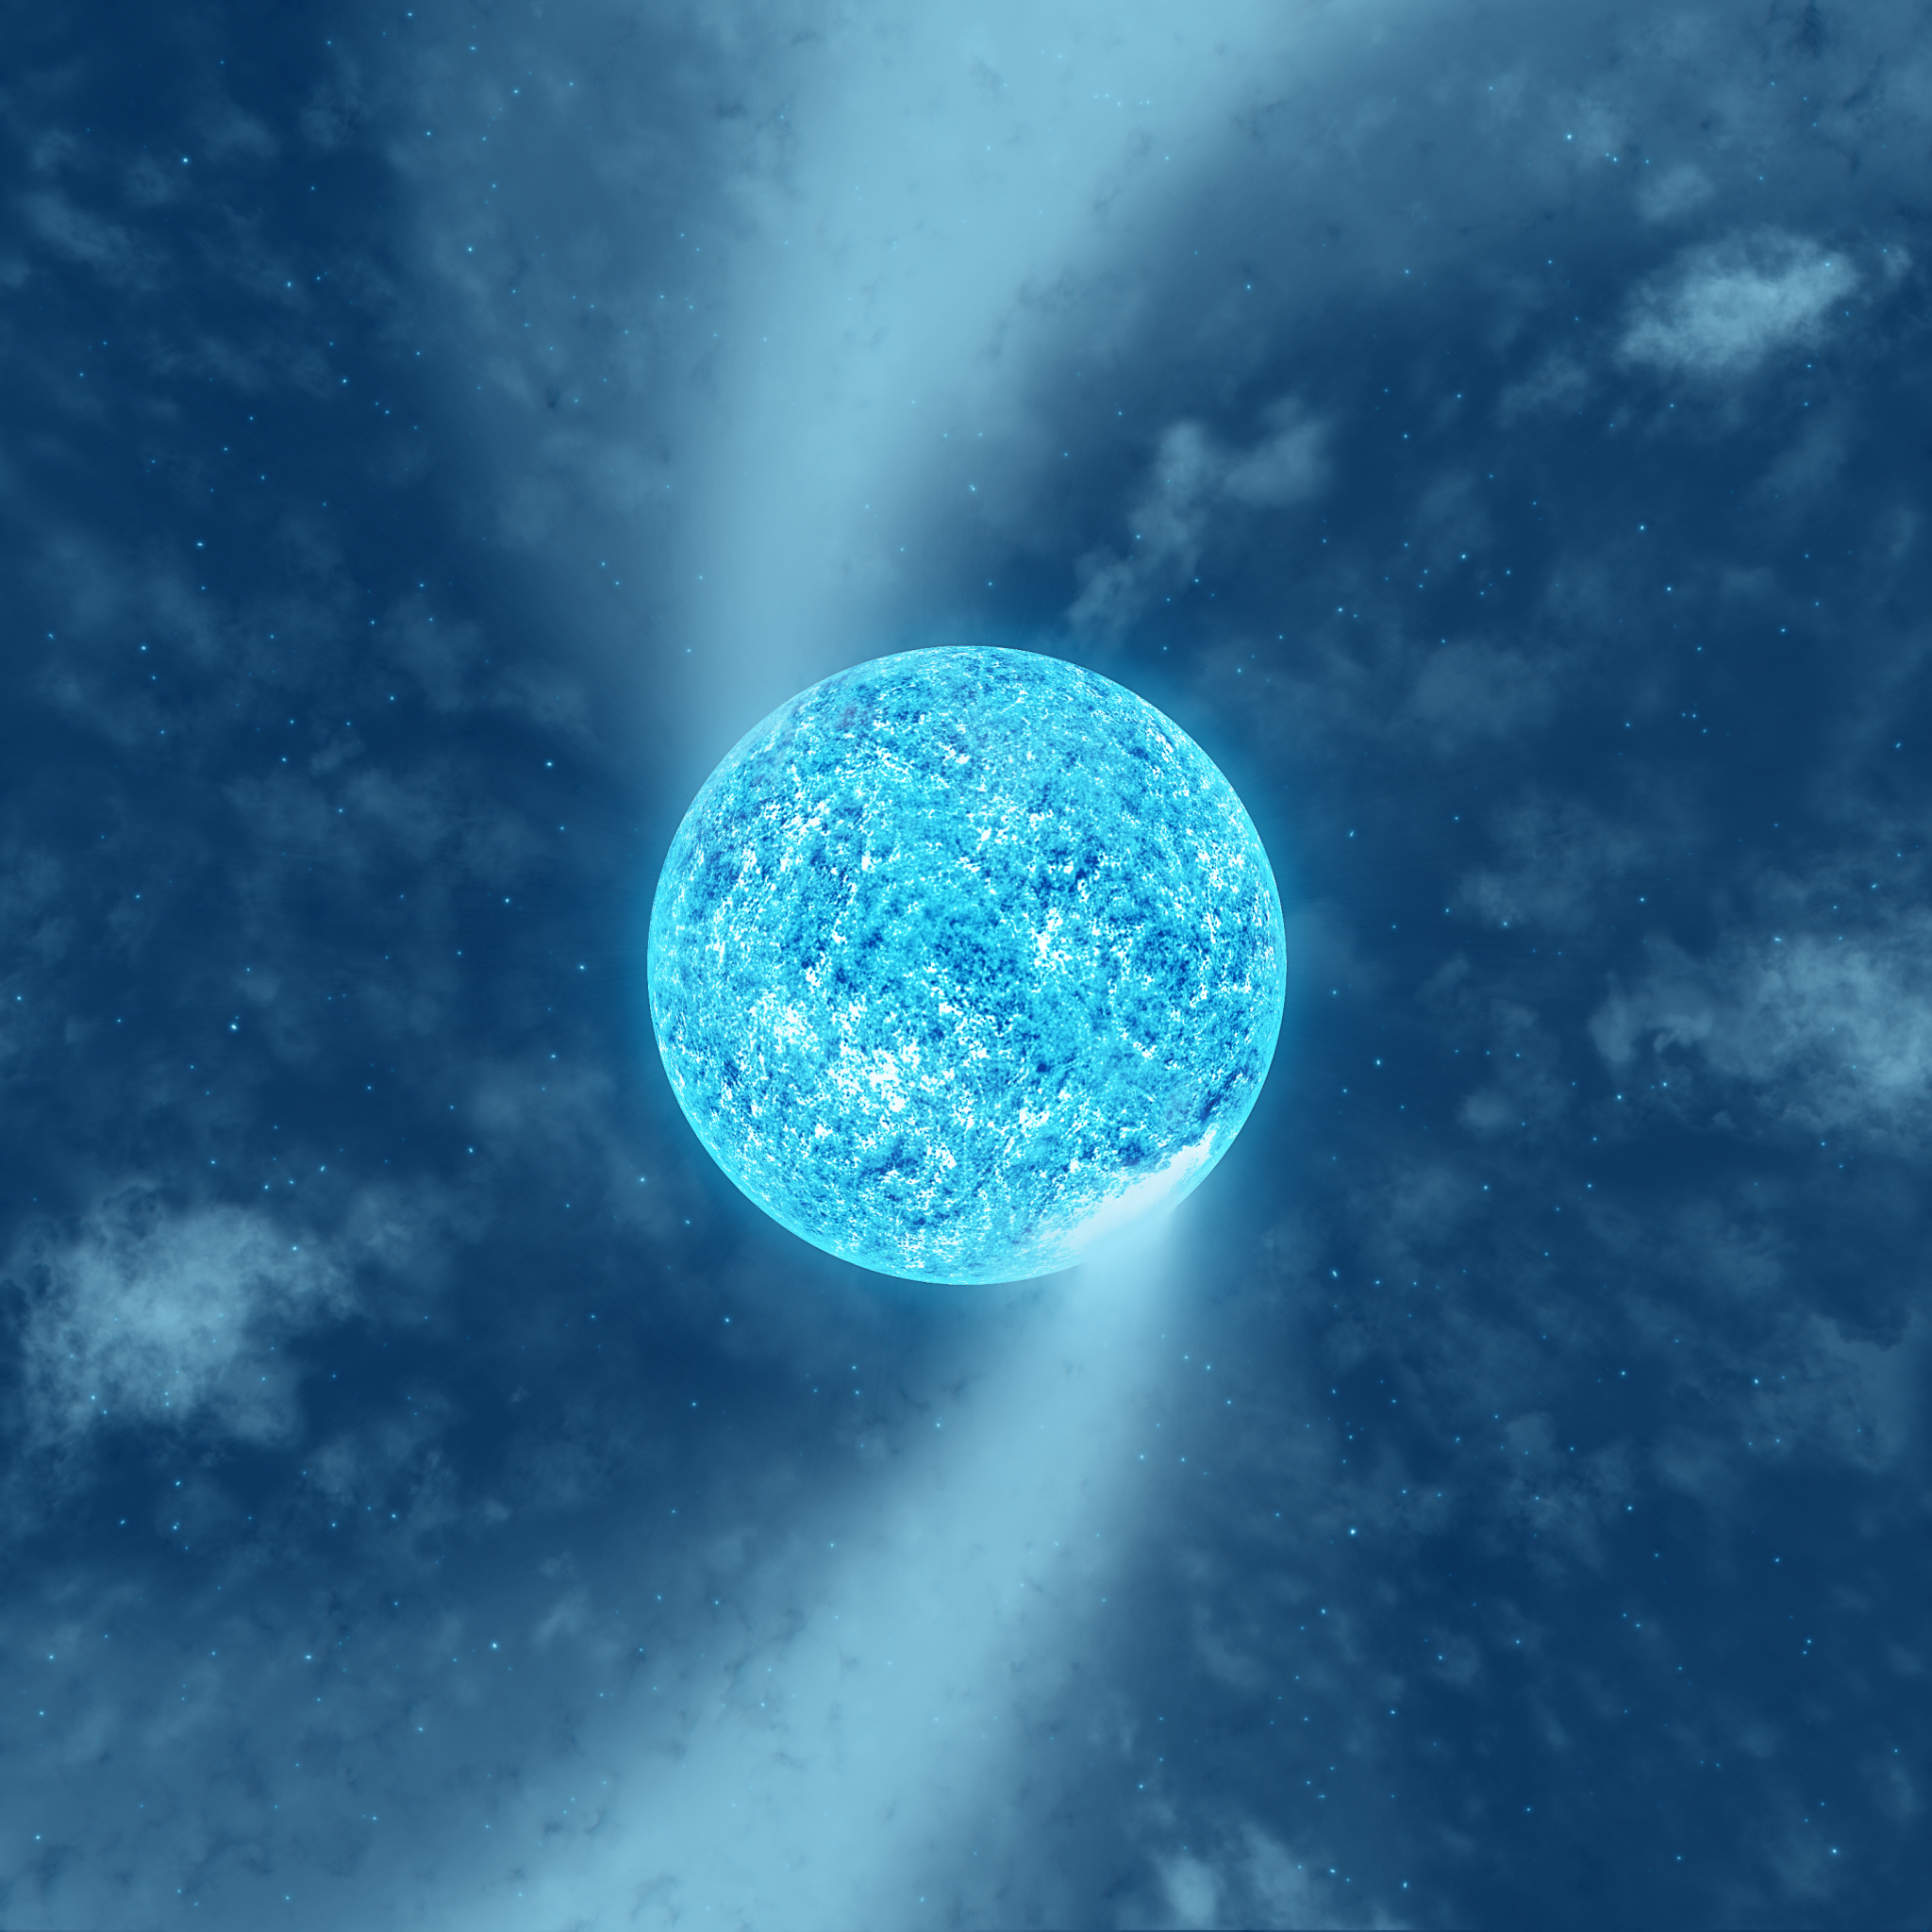 Artist's impression of the hot massive supergiant Zeta Puppis. The rotation period of the star indicated by the new BRITE observations is 1.78 d, and its spin axis is inclined by (24 ± 9)° with respect to the line of sight. [Image credits: Tahina Ramiaramanantsoa]